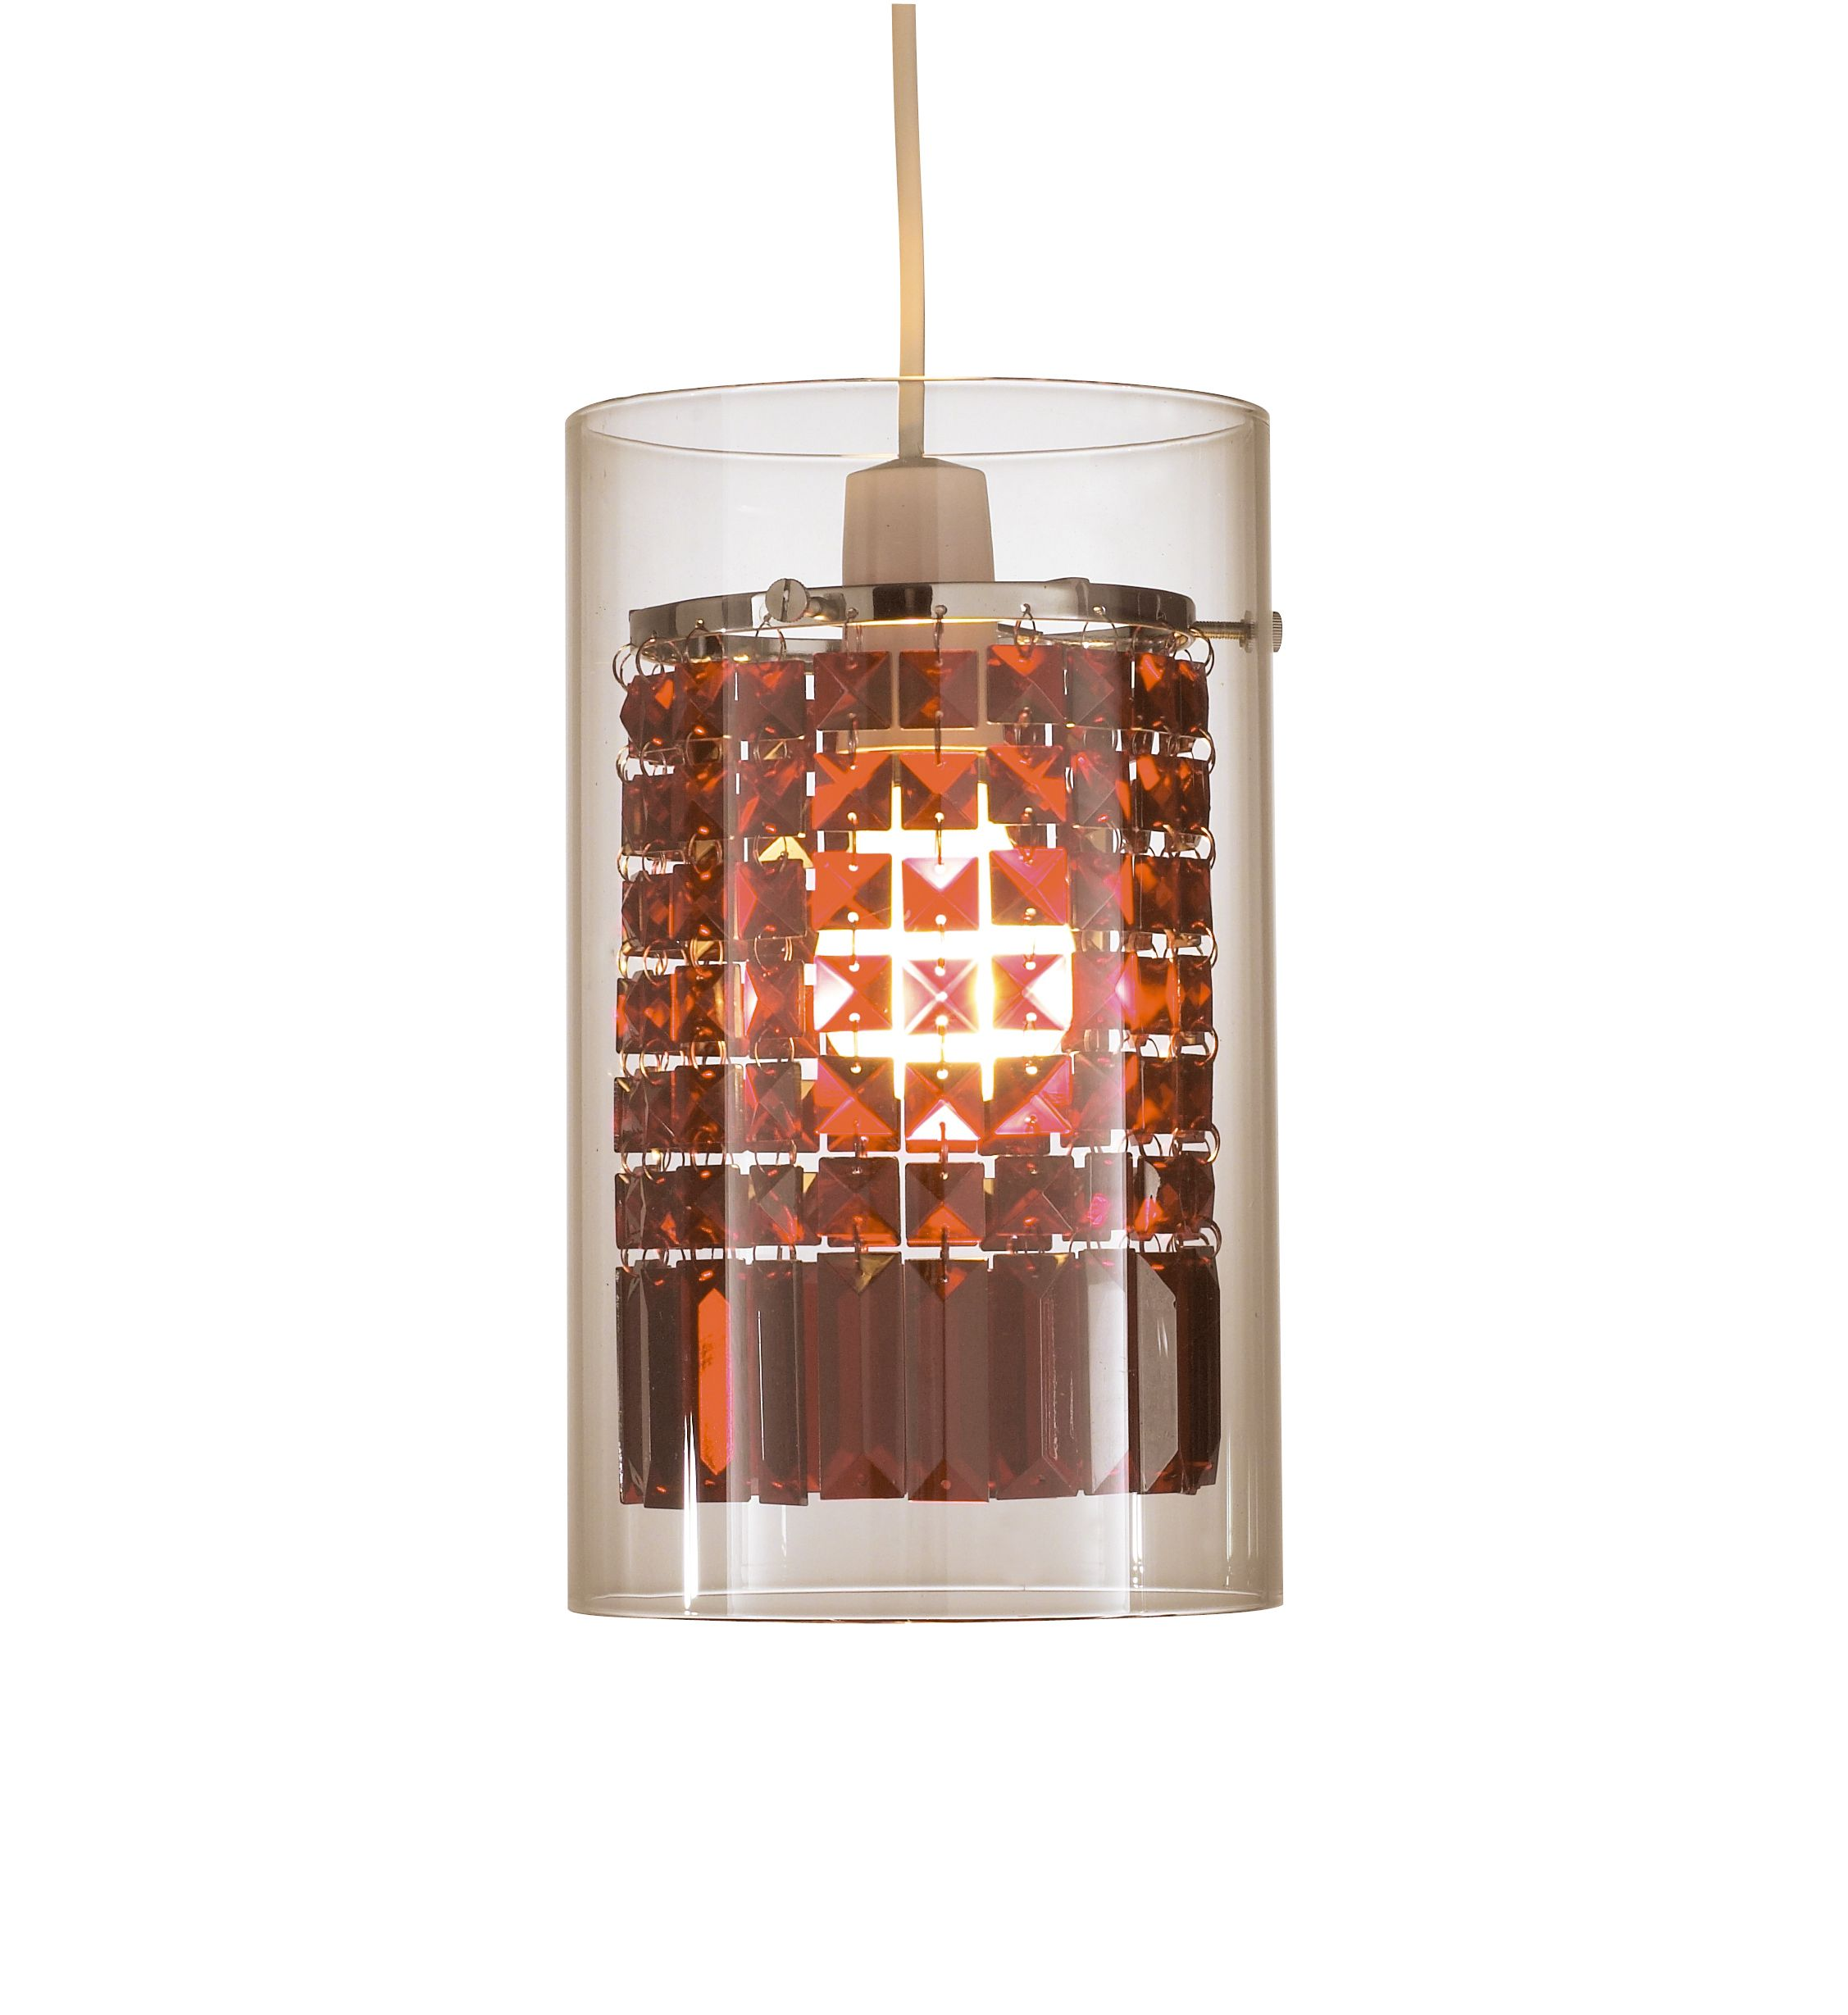 Ceiling Lights House Of Fraser : House of fraser hyde non electric ceiling pendant